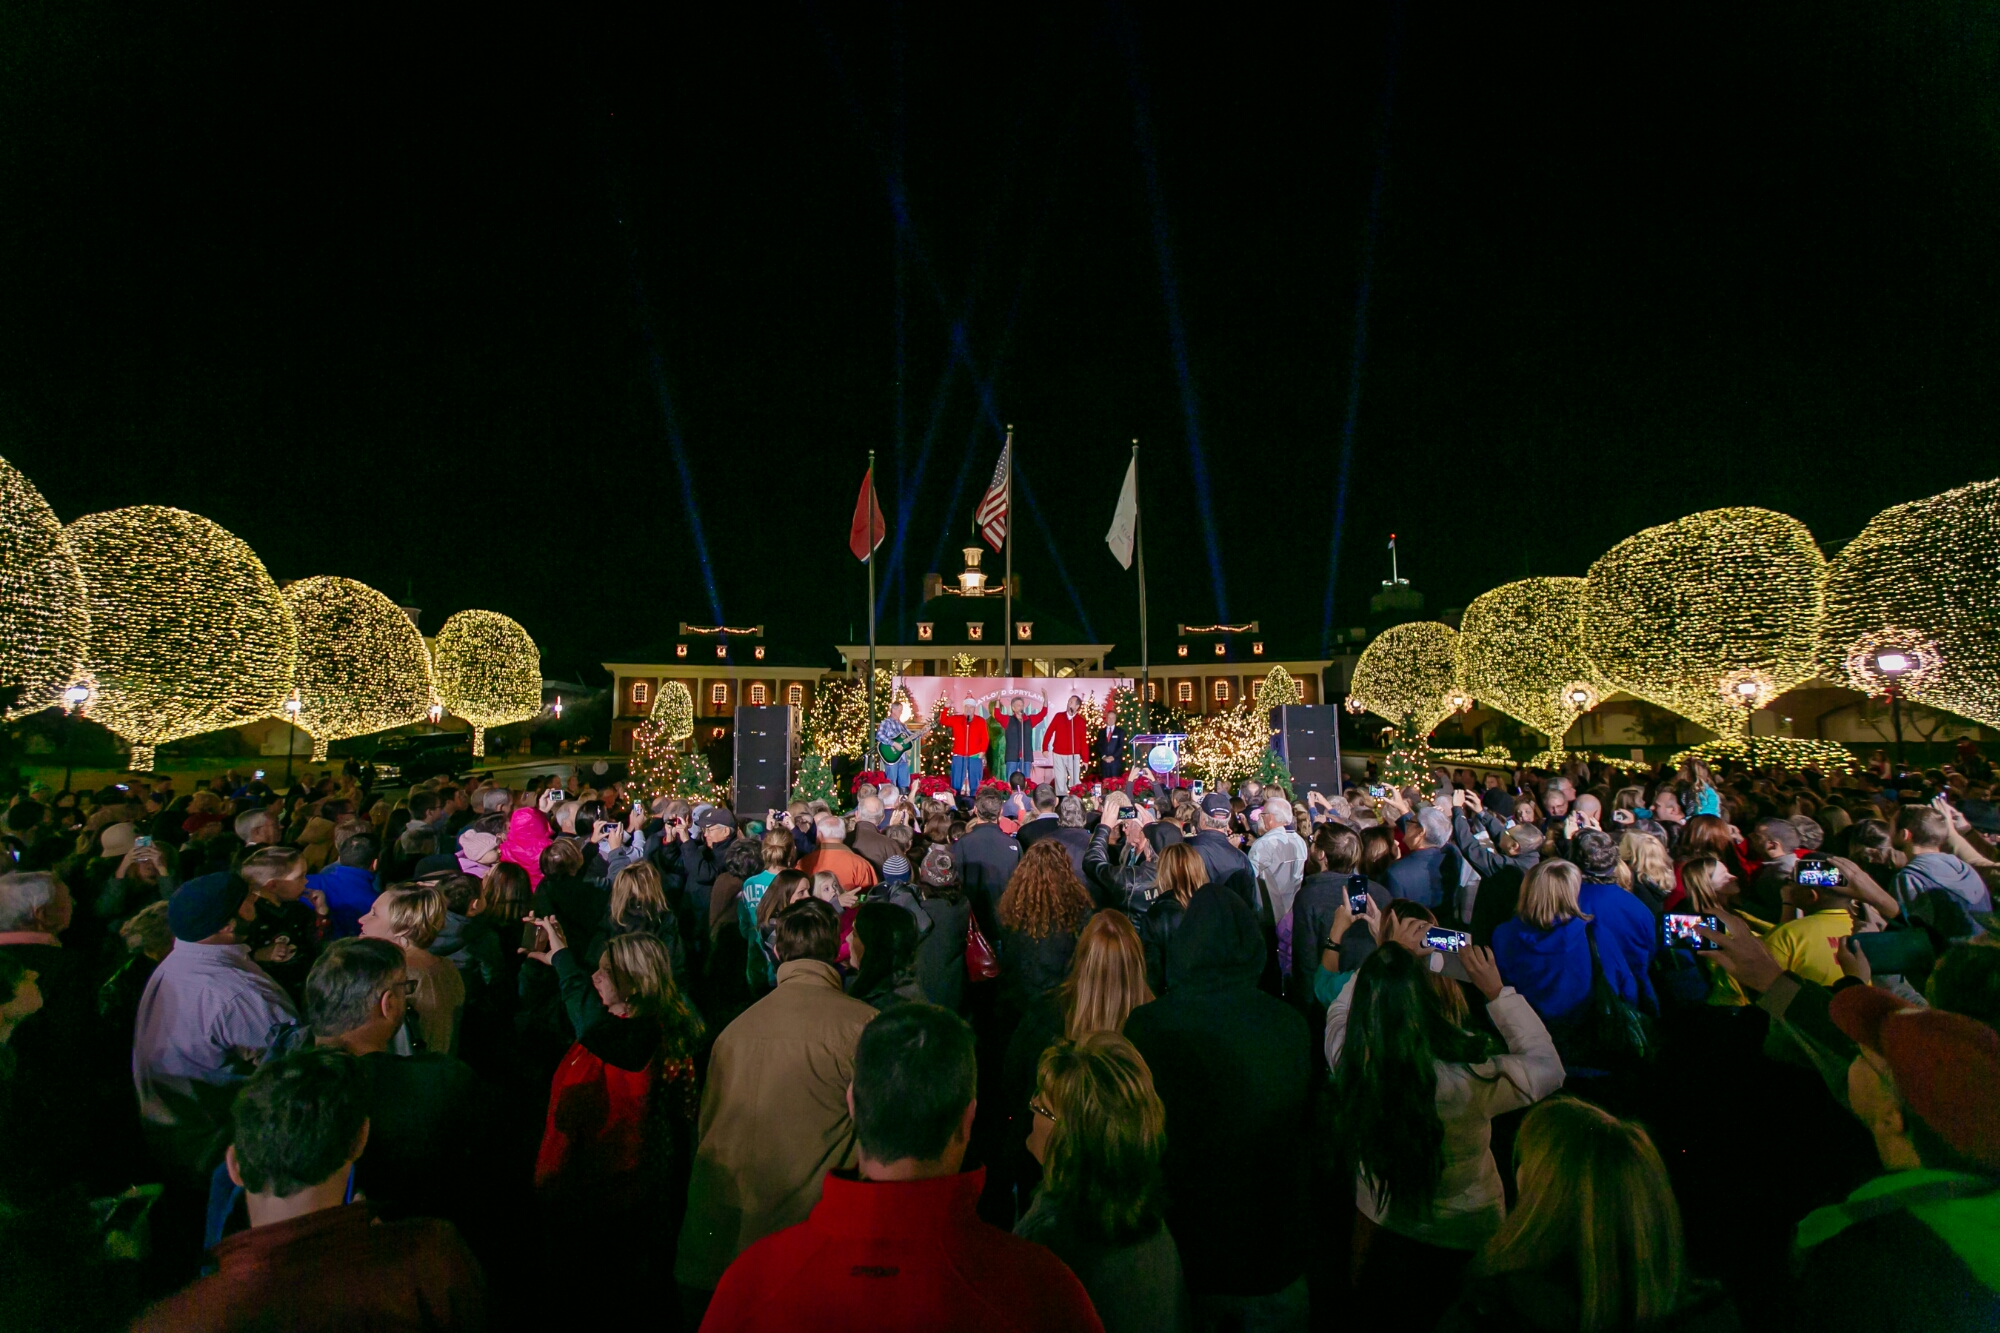 A Country Christmas at Gaylord Opryland Returns with 2.3 Million Lights